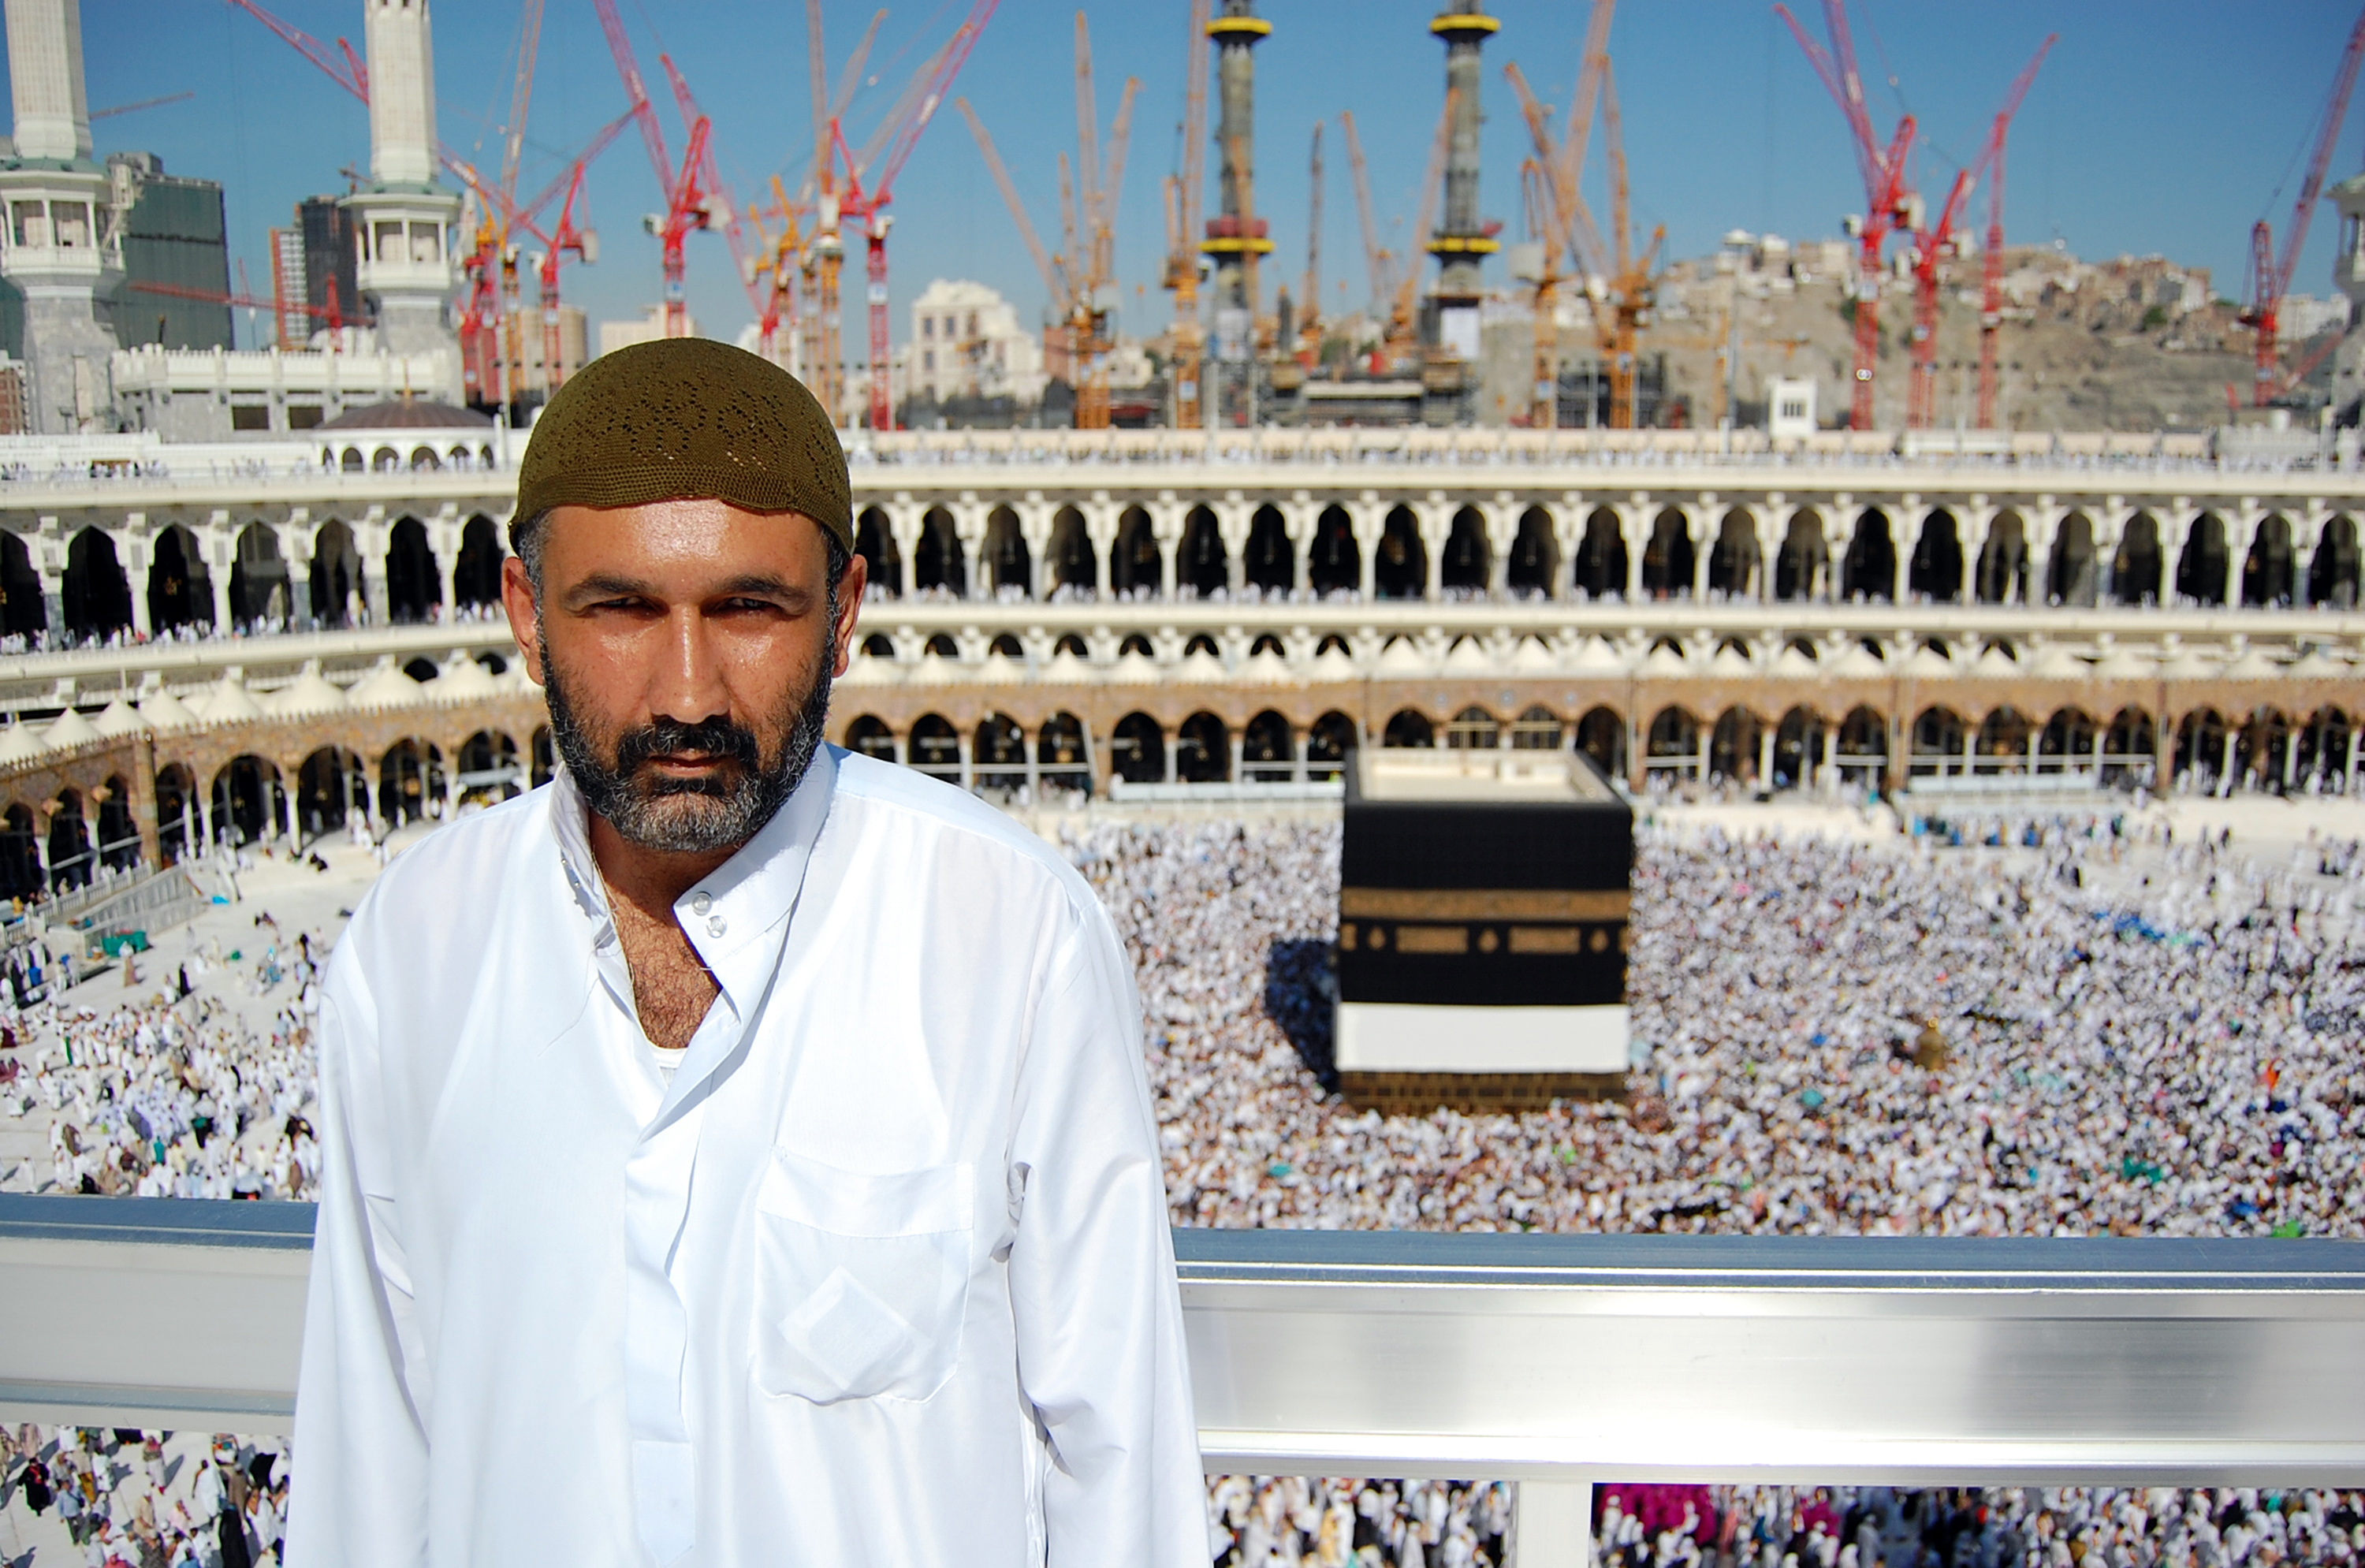 Parvez Sharma photographed with the Kaaba behind him. (Photo courtesy Haram Films/TNS)